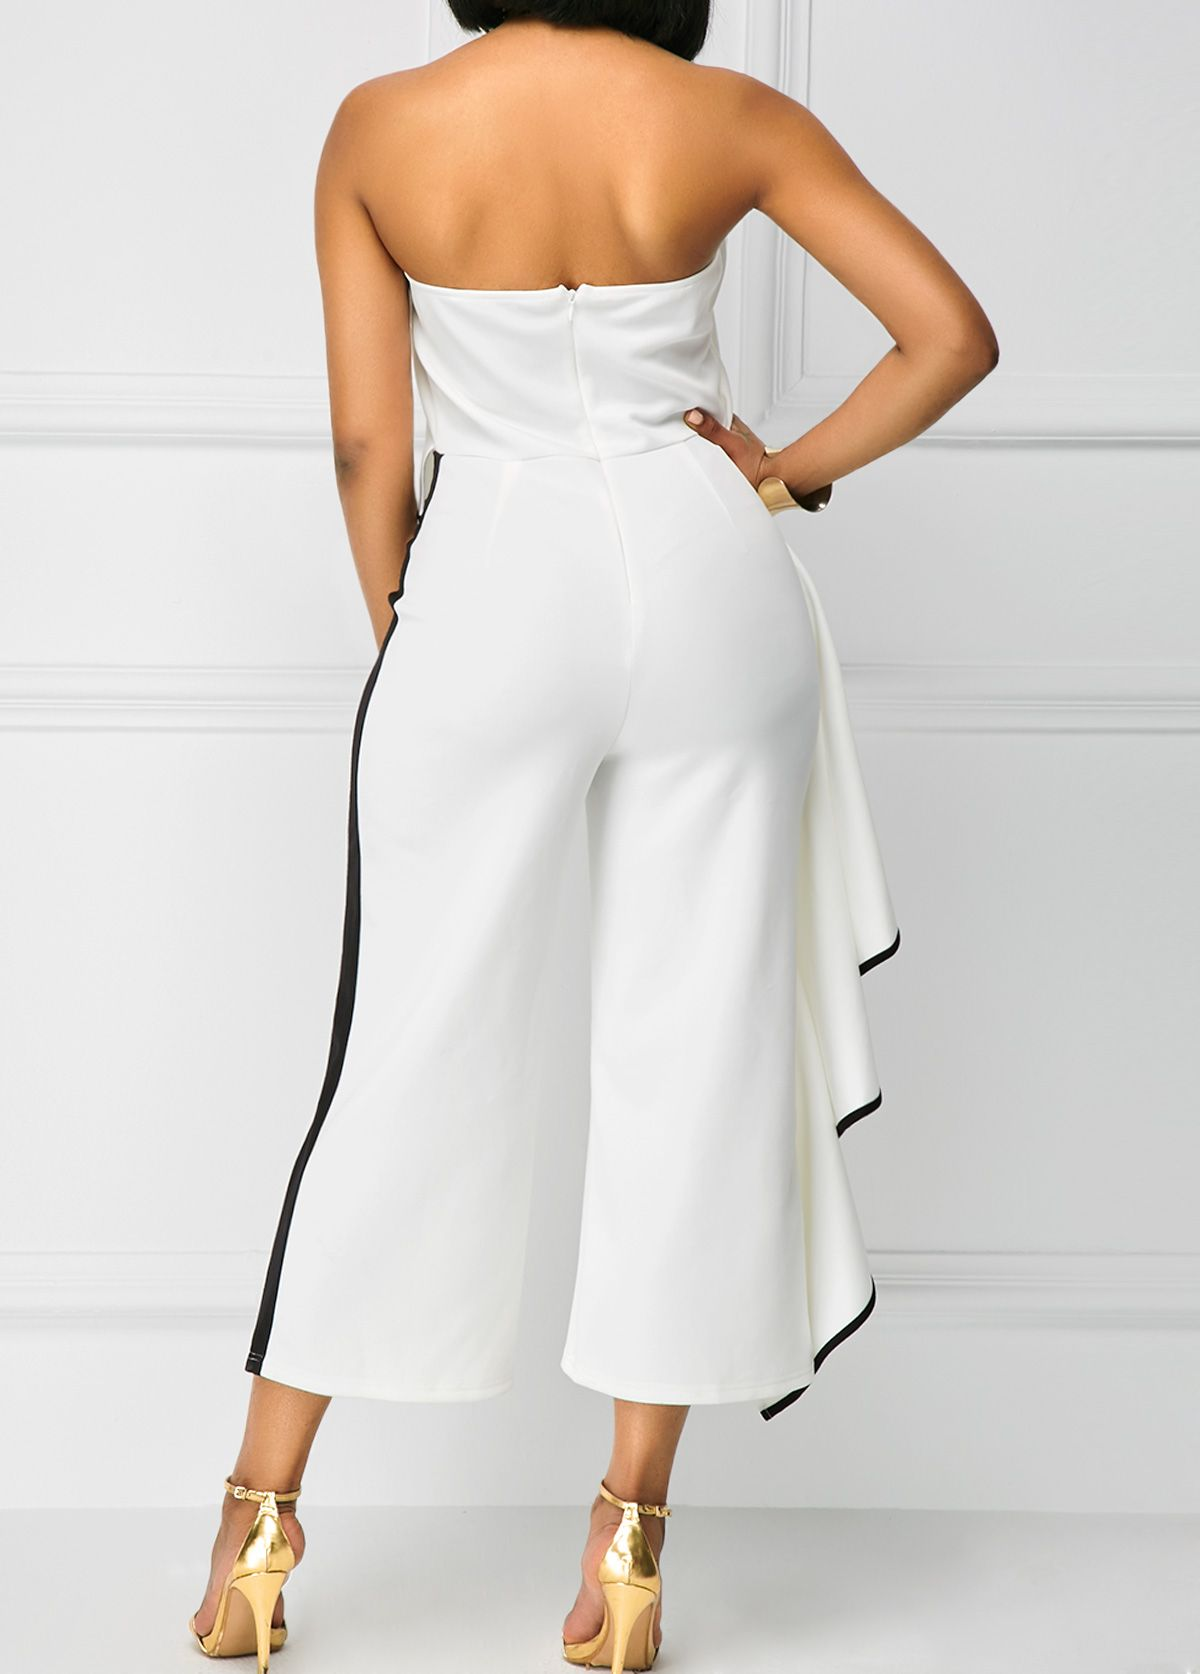 5d4c04dbe358 High Waist Ruffle Overlay Strapless White Jumpsuit on sale only US 35.84  now